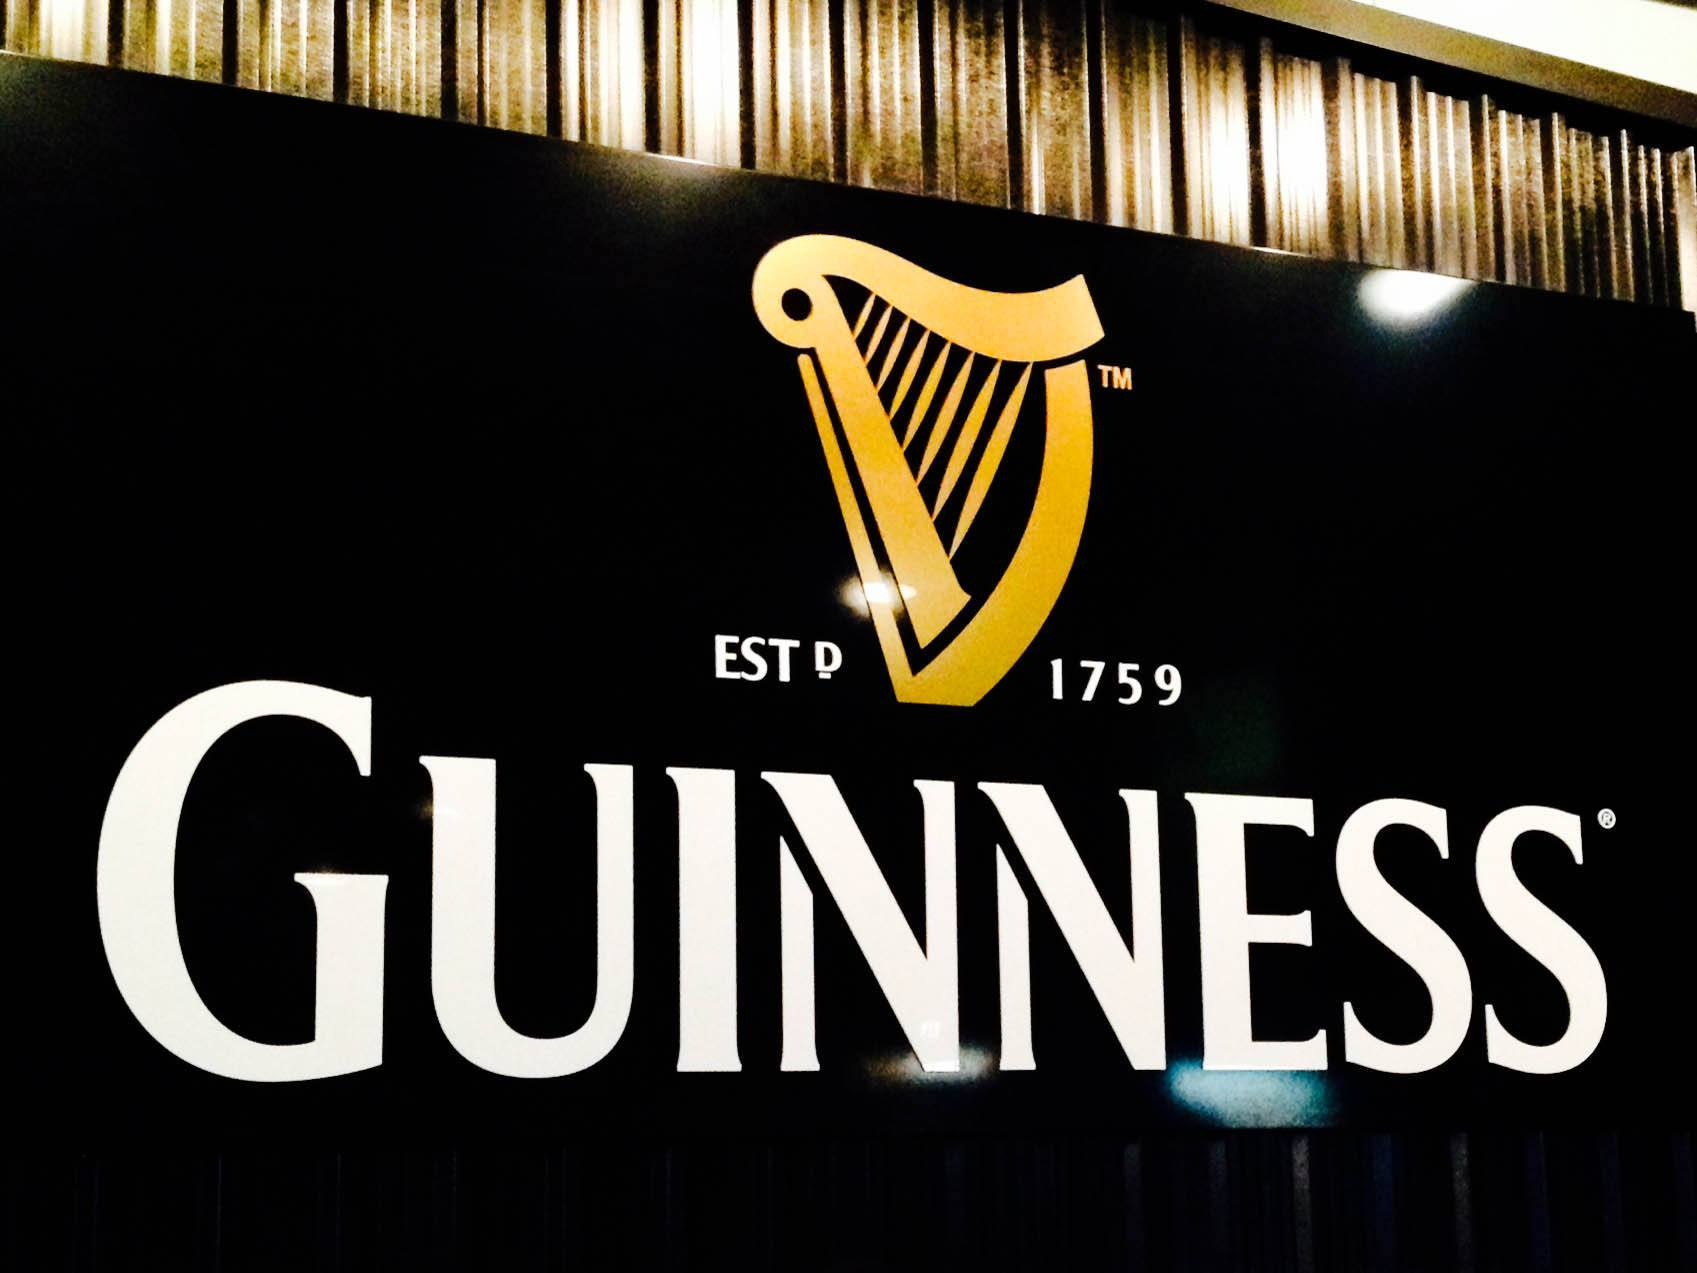 The Guinness St. James Gate